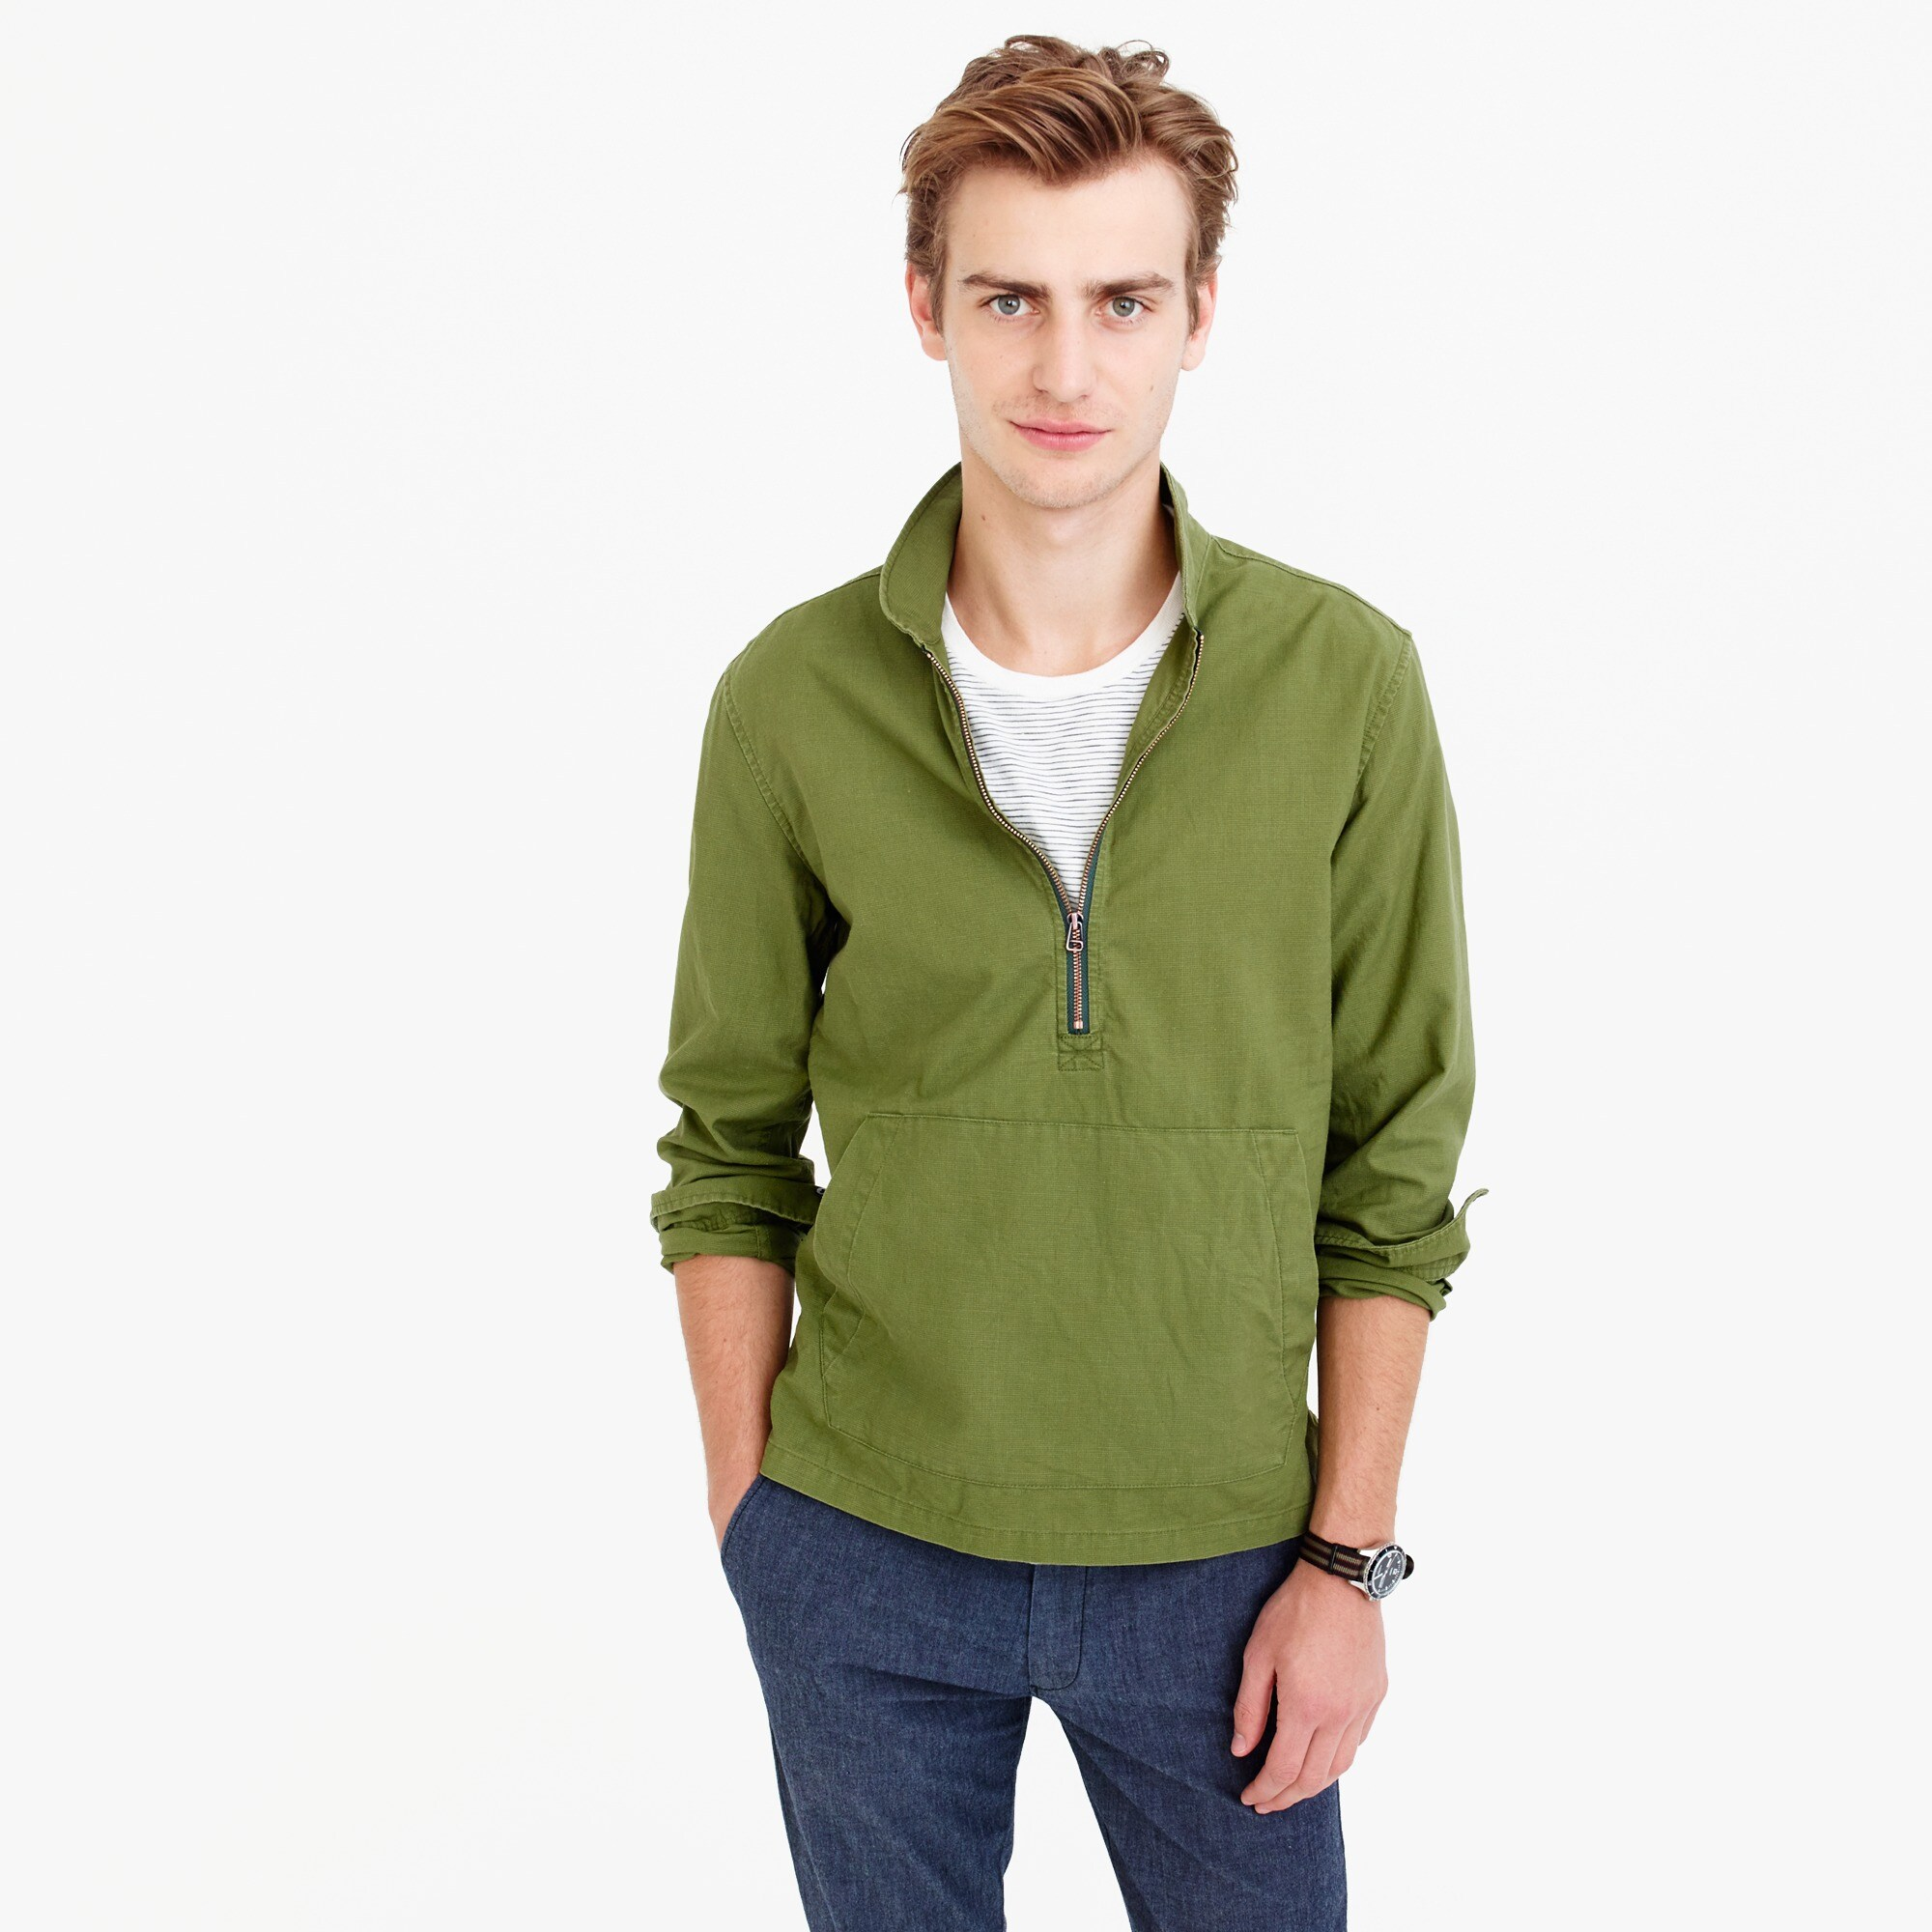 Image 1 for Wallace & Barnes half-zip pullover shirt